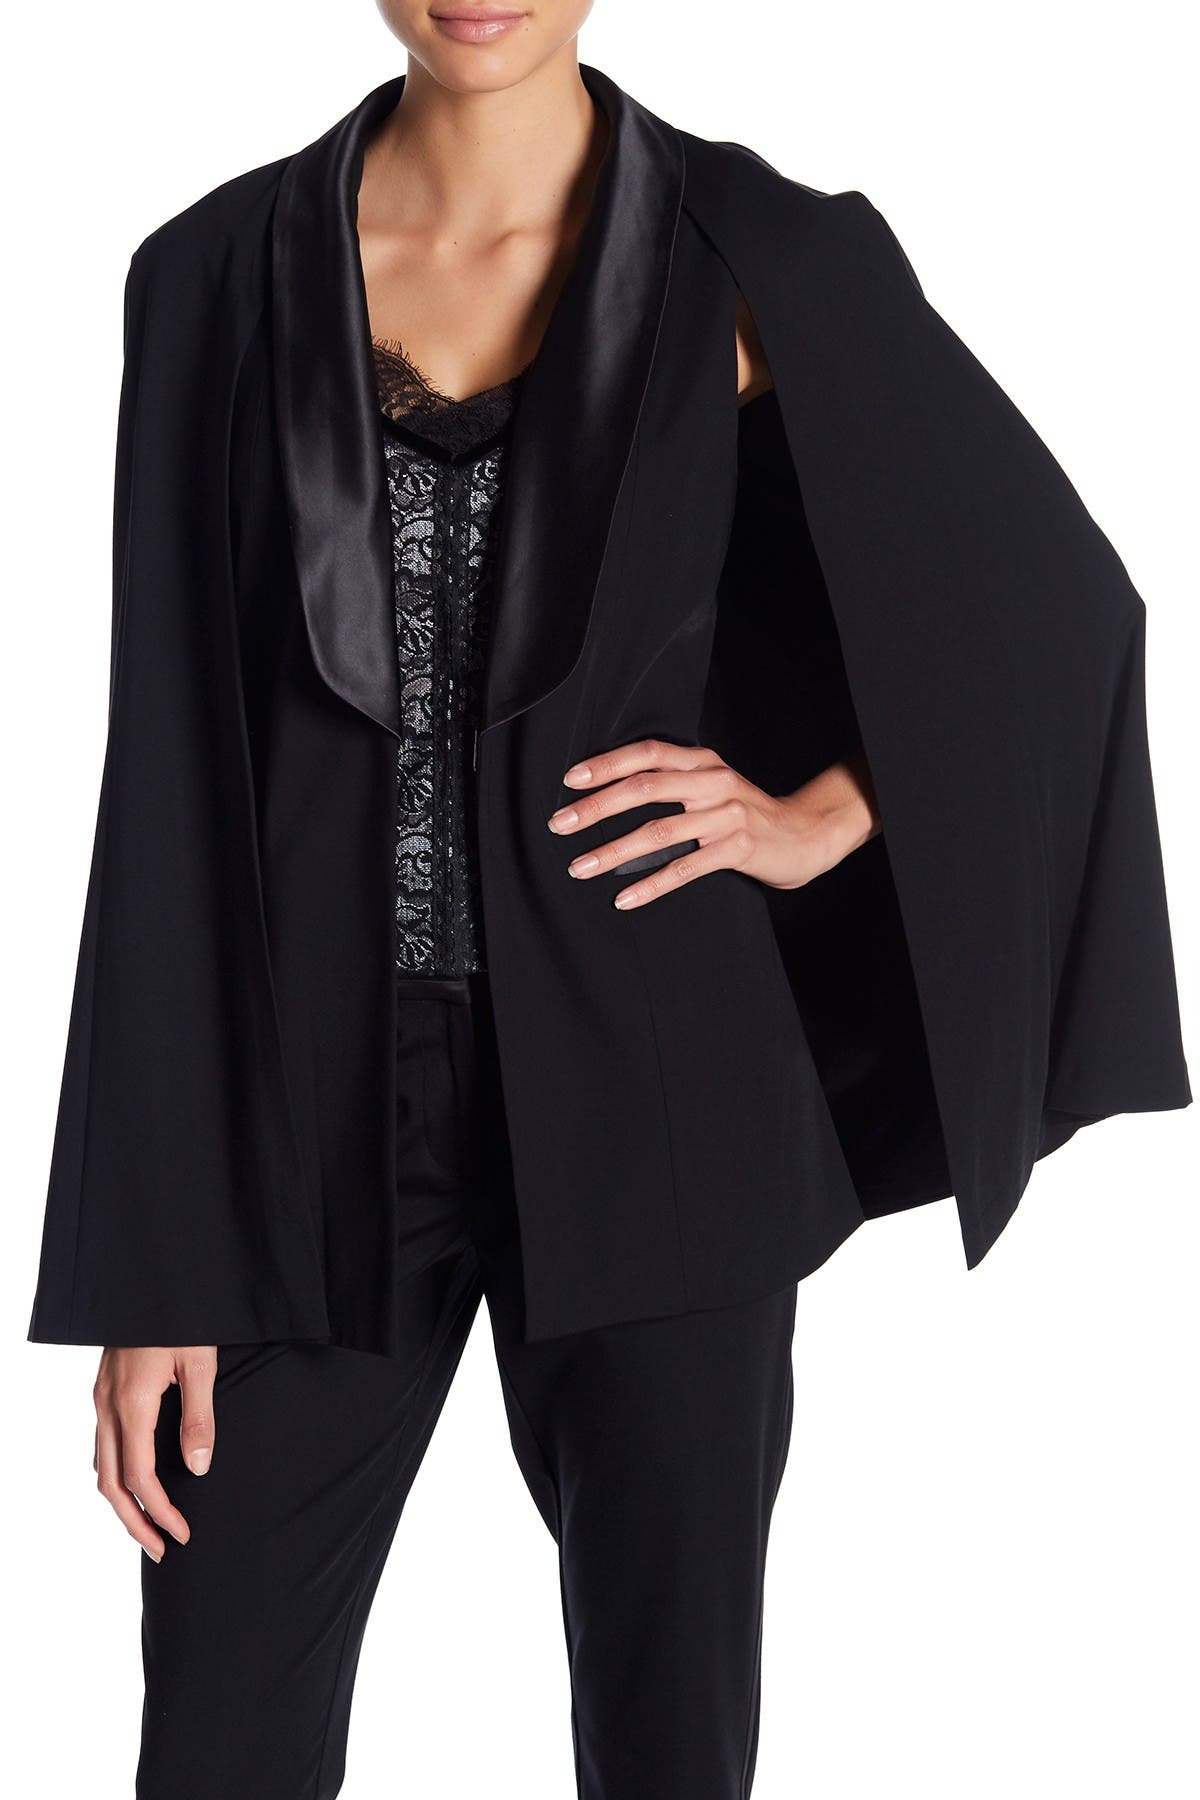 Image of Laundry By Shelli Segal Removable Cape Satin Trim Vest